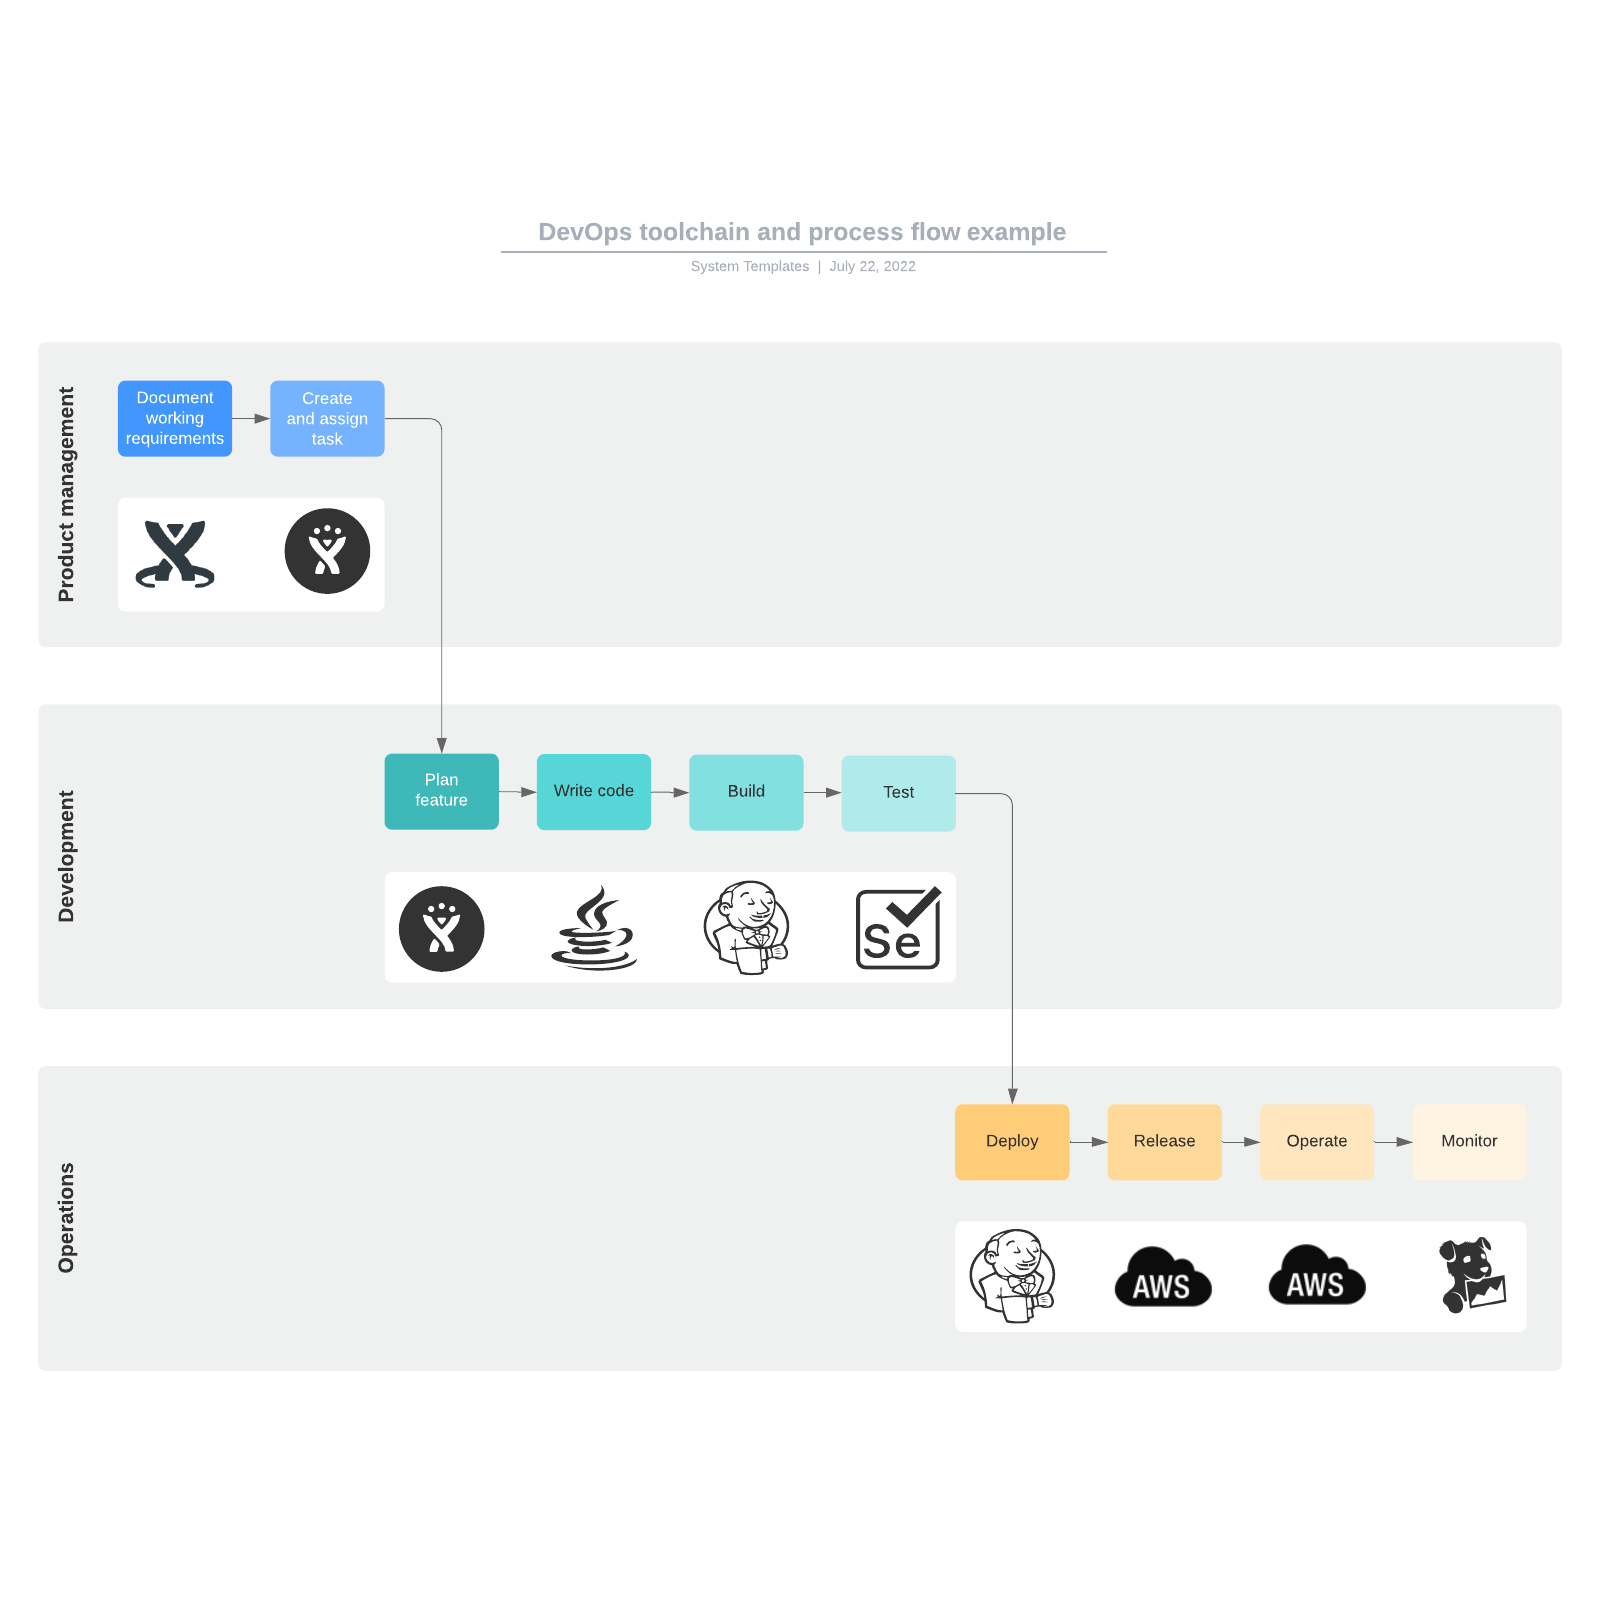 DevOps toolchain and process flow example